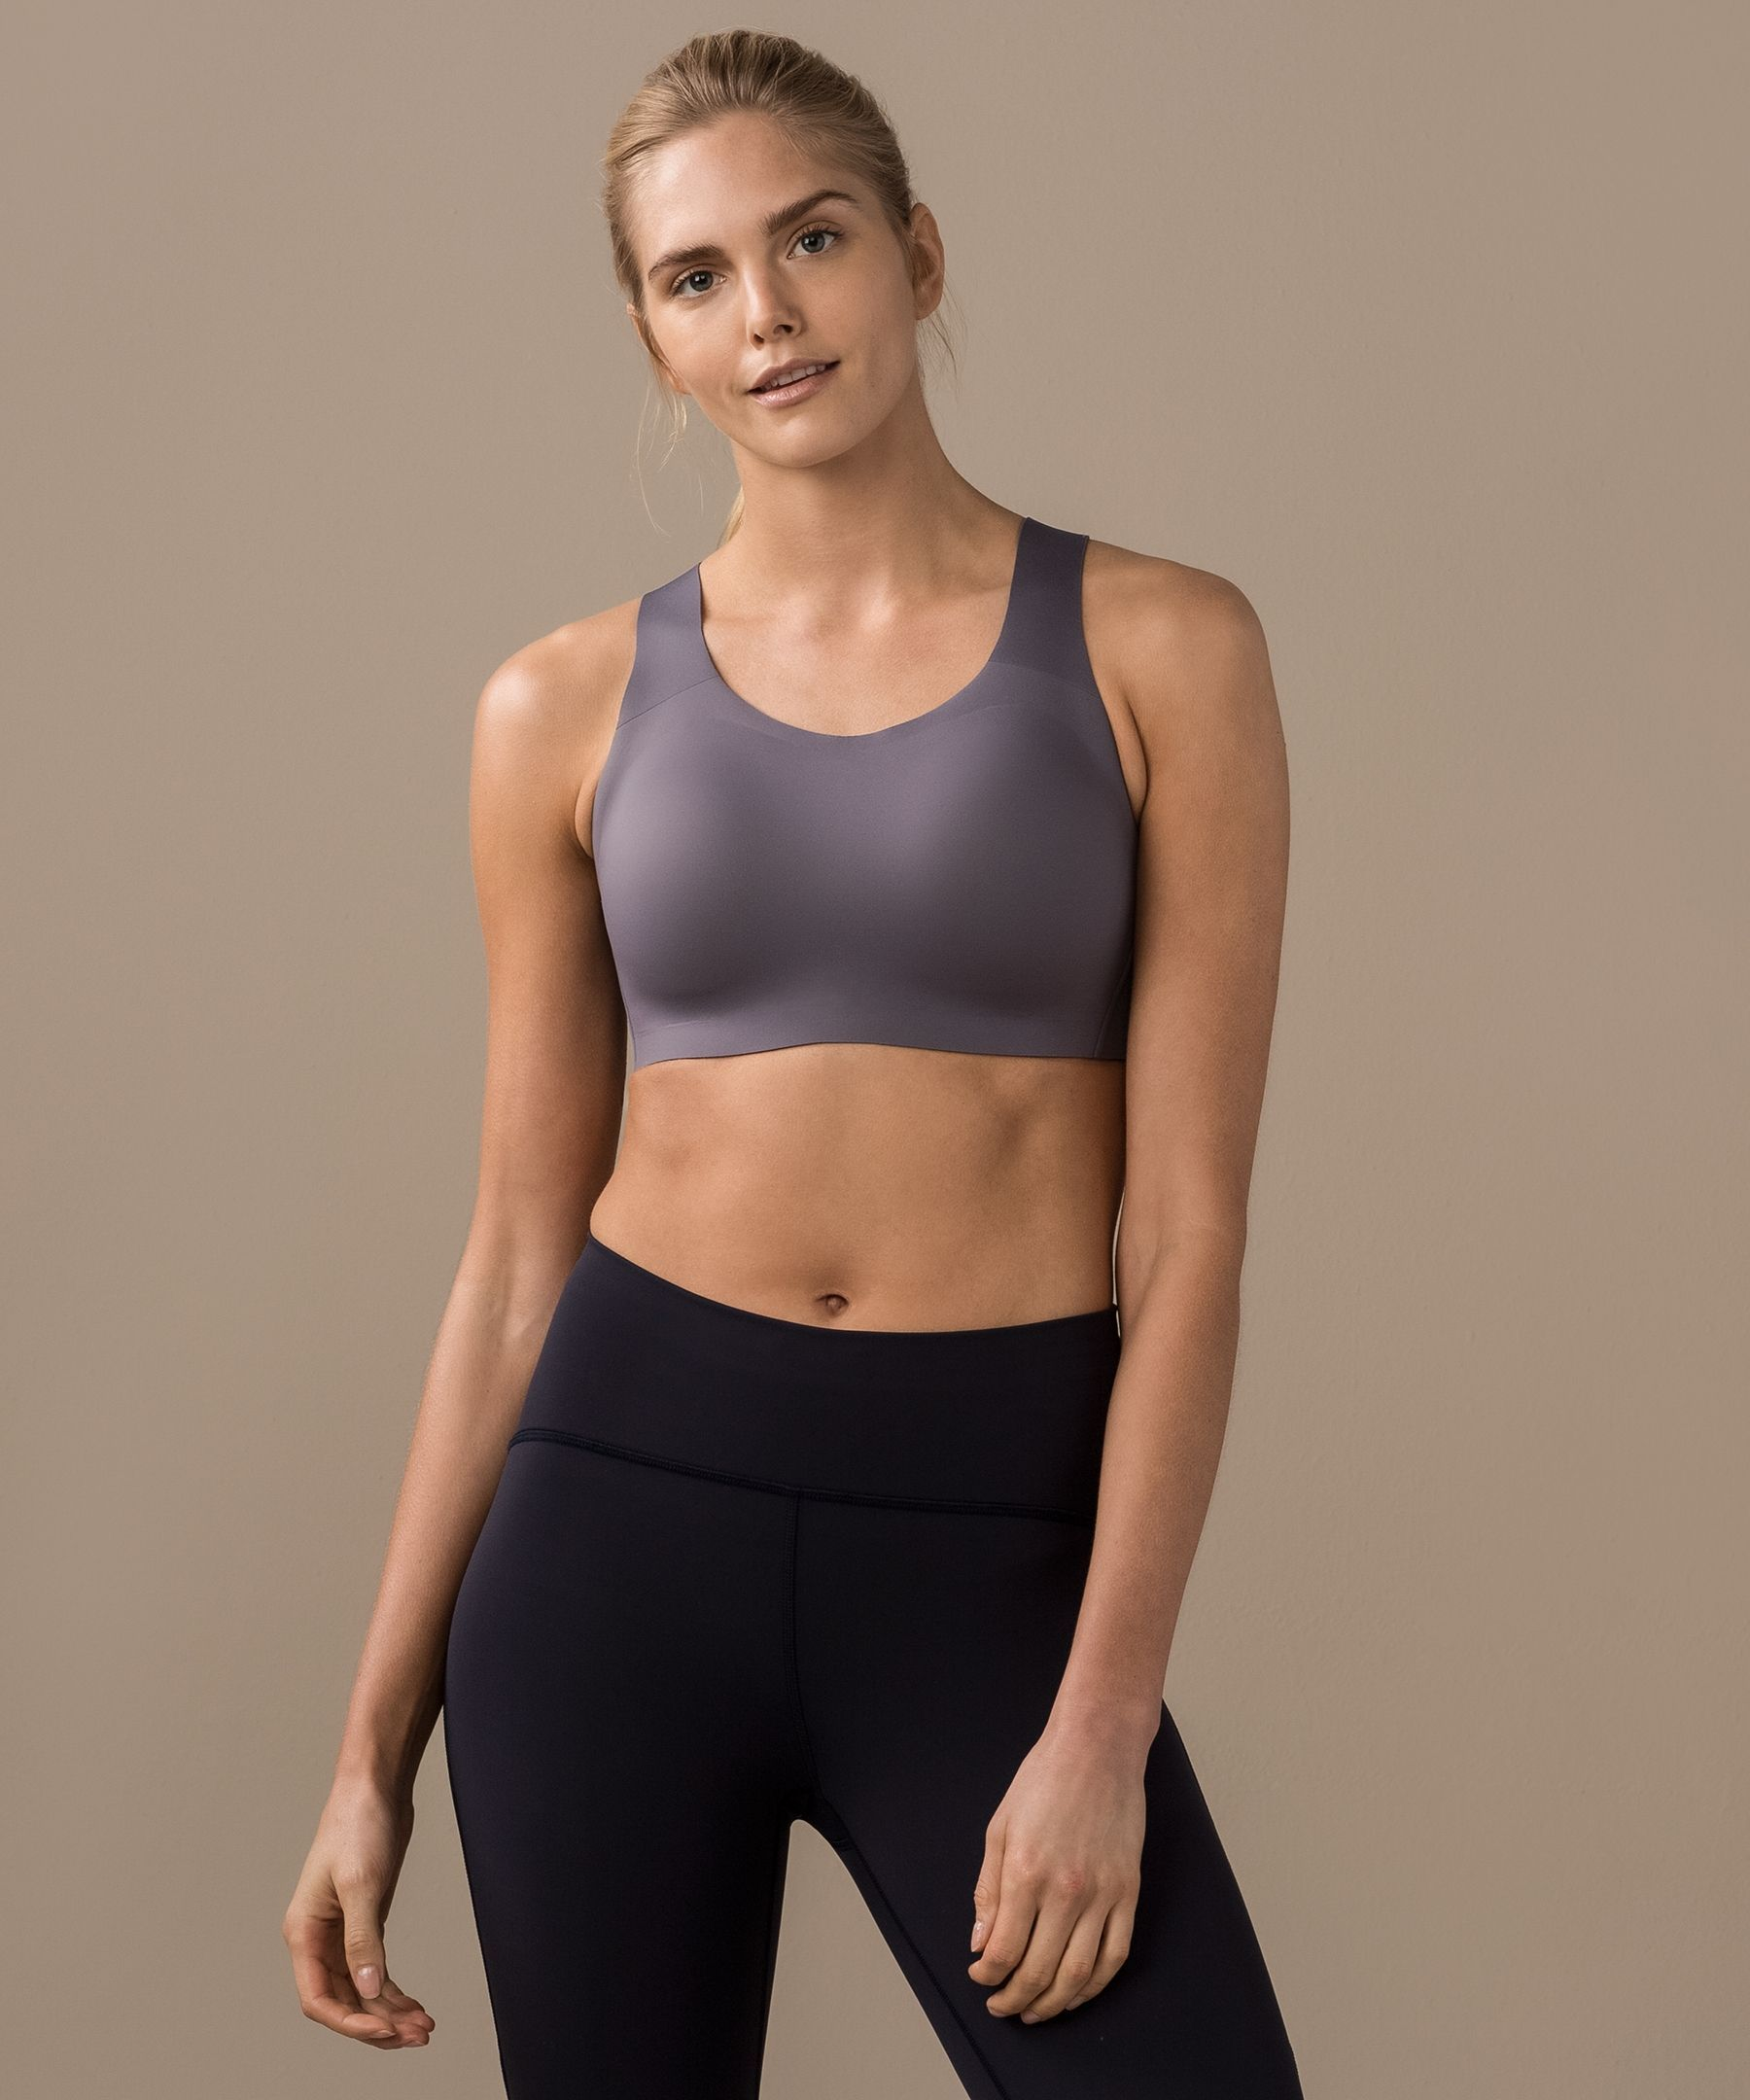 b3158ce5e5dfc Running never felt so good—we designed this revolutionary bra to give you  comfort